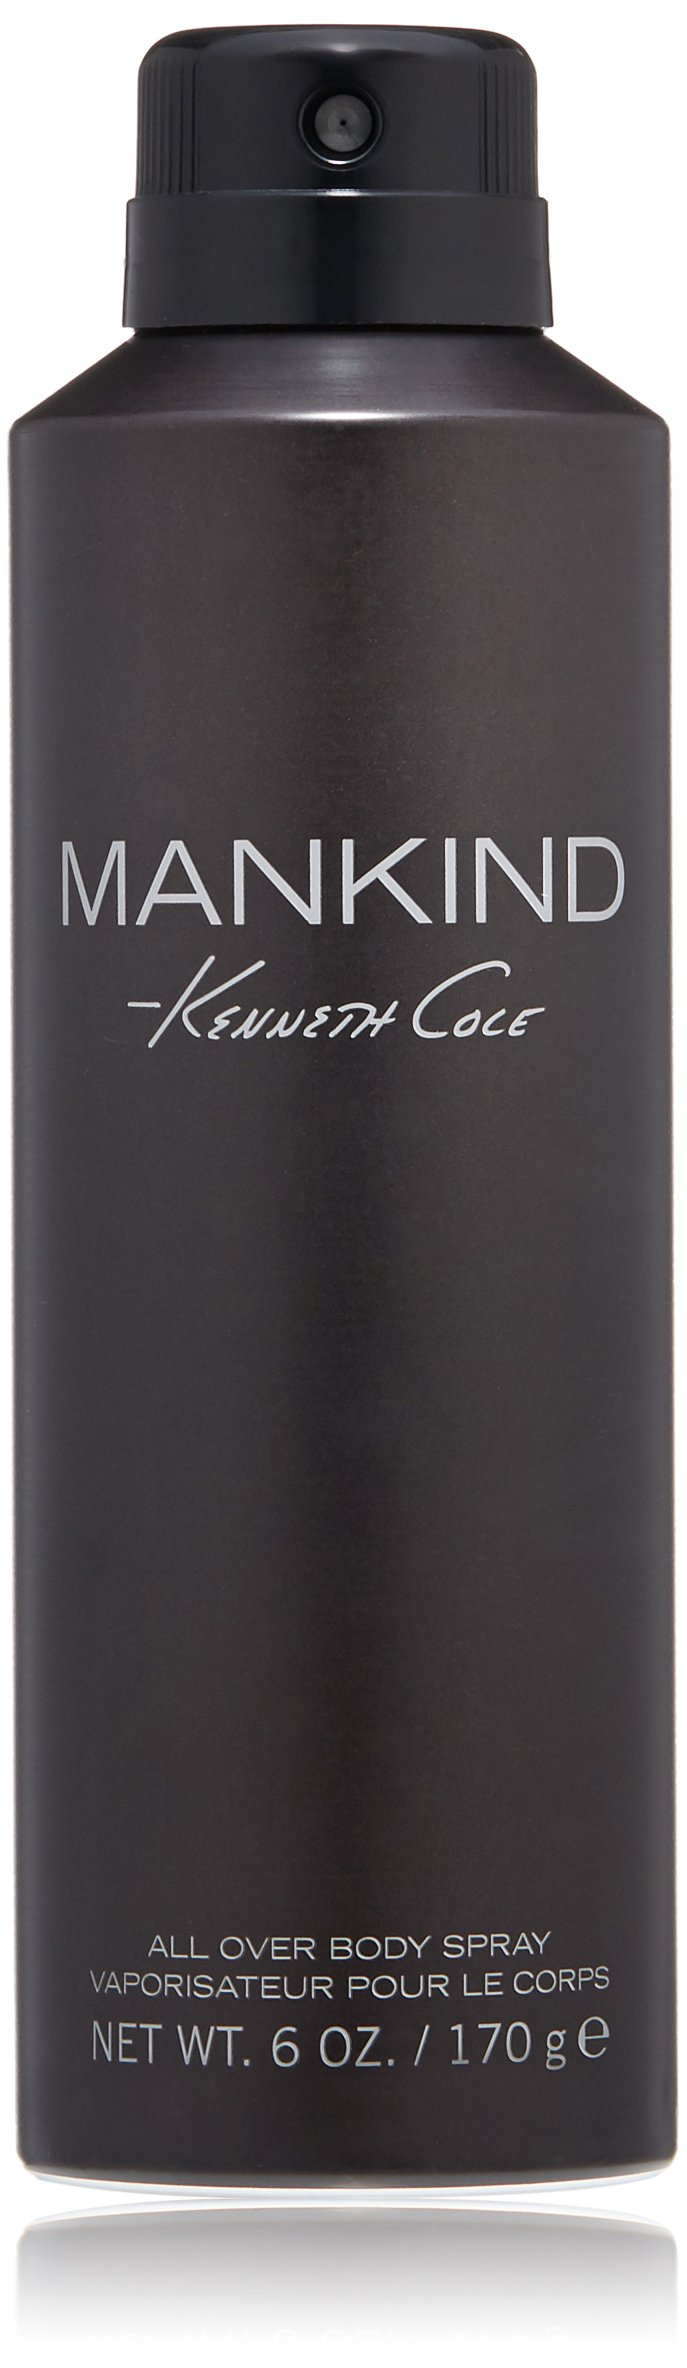 Kenneth Cole Mankind Body Spray, 6.0 Oz by Kenneth Cole